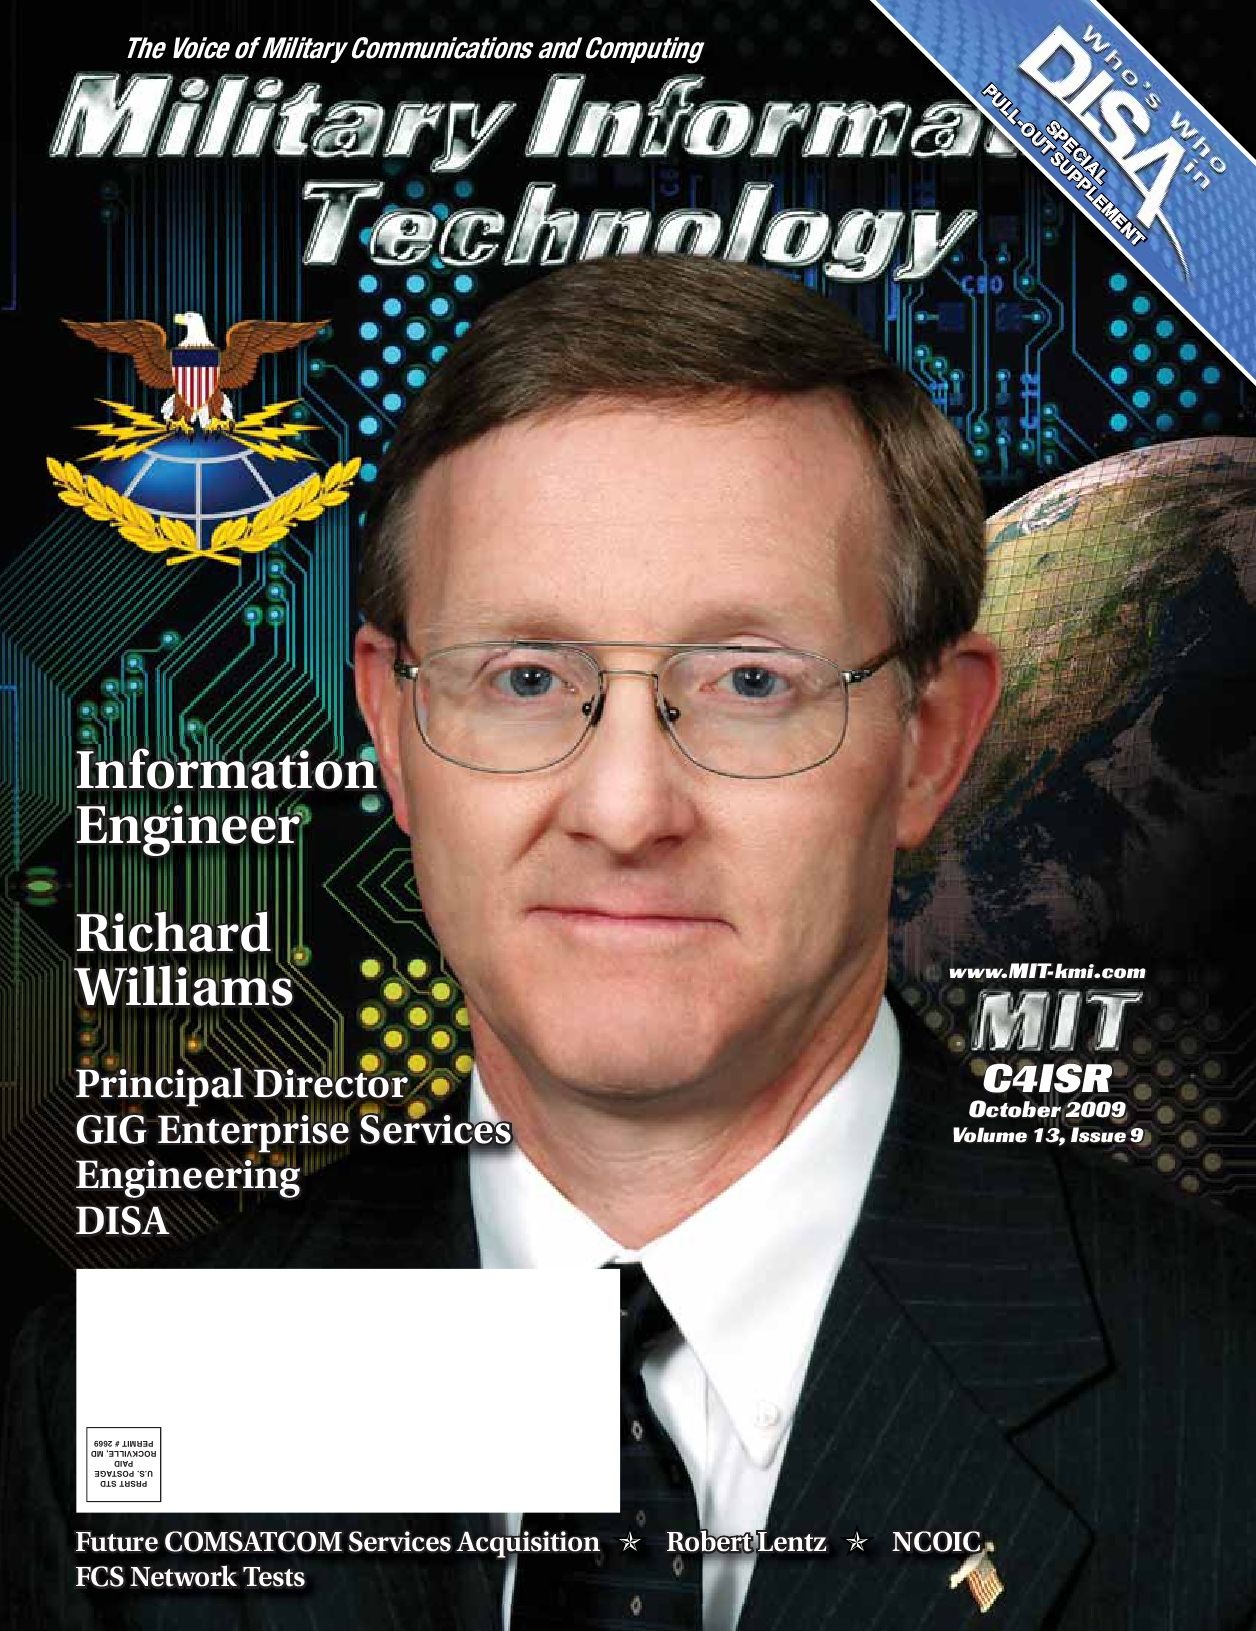 MIT DISA Who's Who and FCSA GSA/DISA Issue 0909 by Ted Kelly